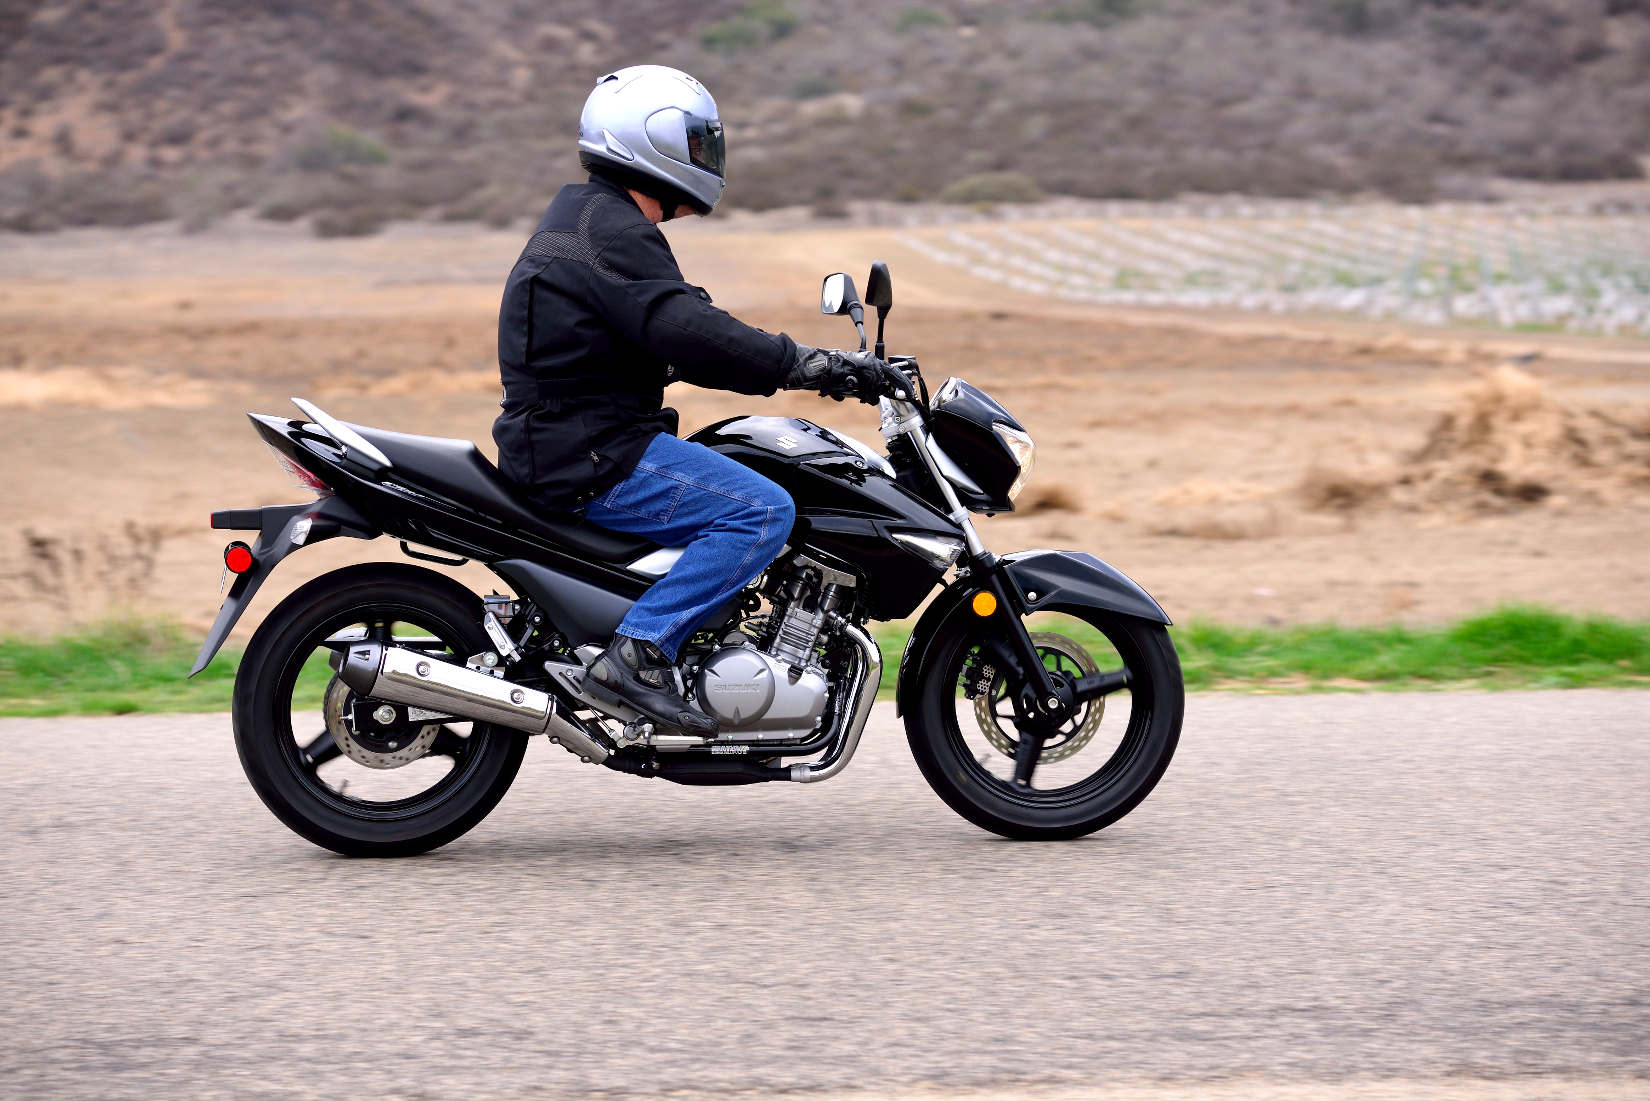 Suzuki GW250: MD Ride Review « MotorcycleDaily.com – Motorcycle News ...